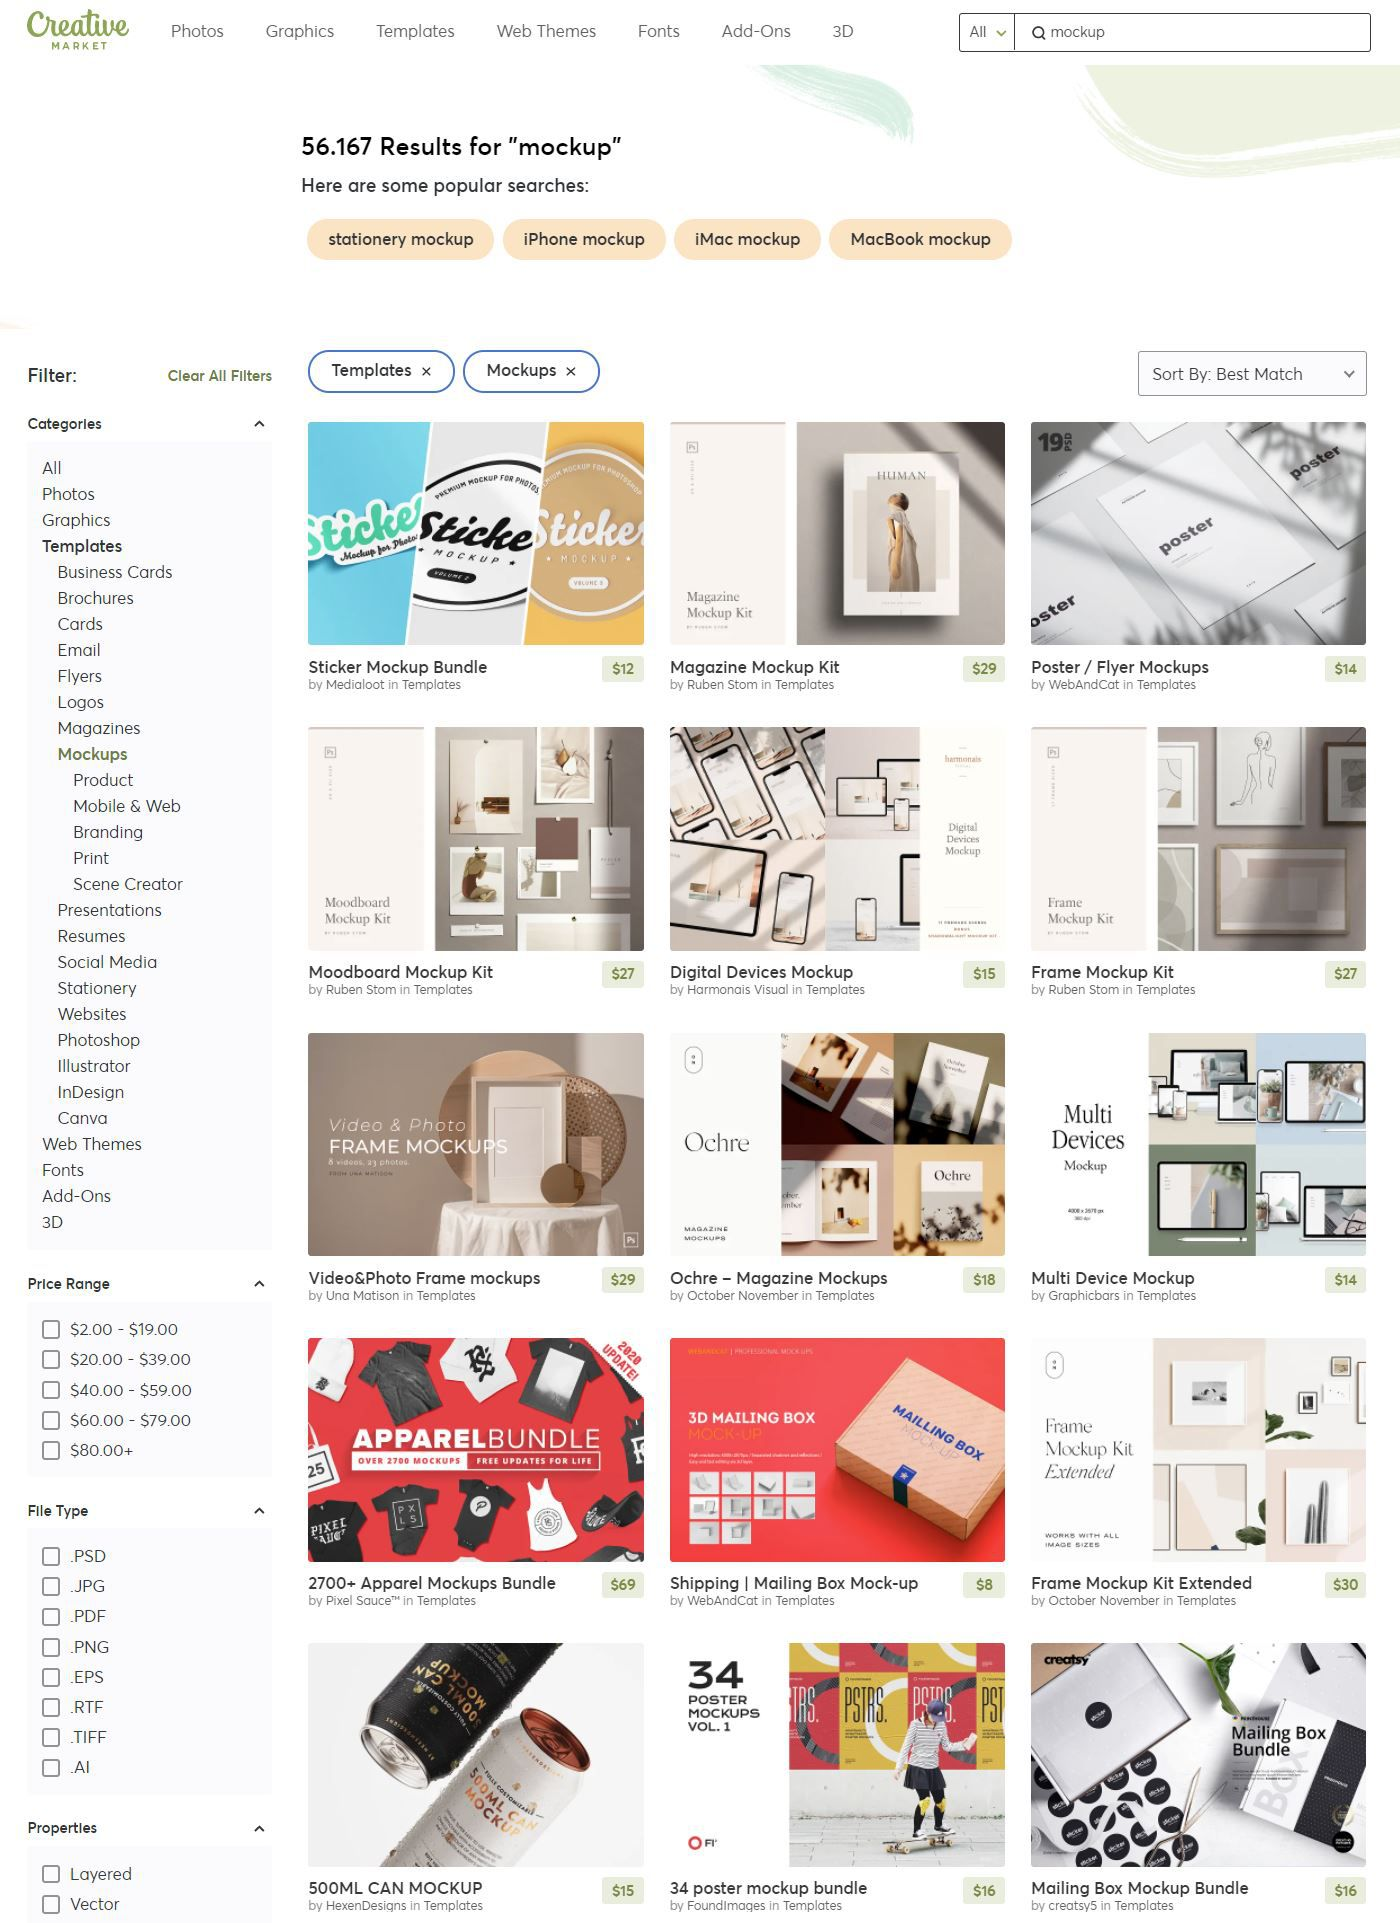 Find your Mockups and Templates at Creative Market with ease